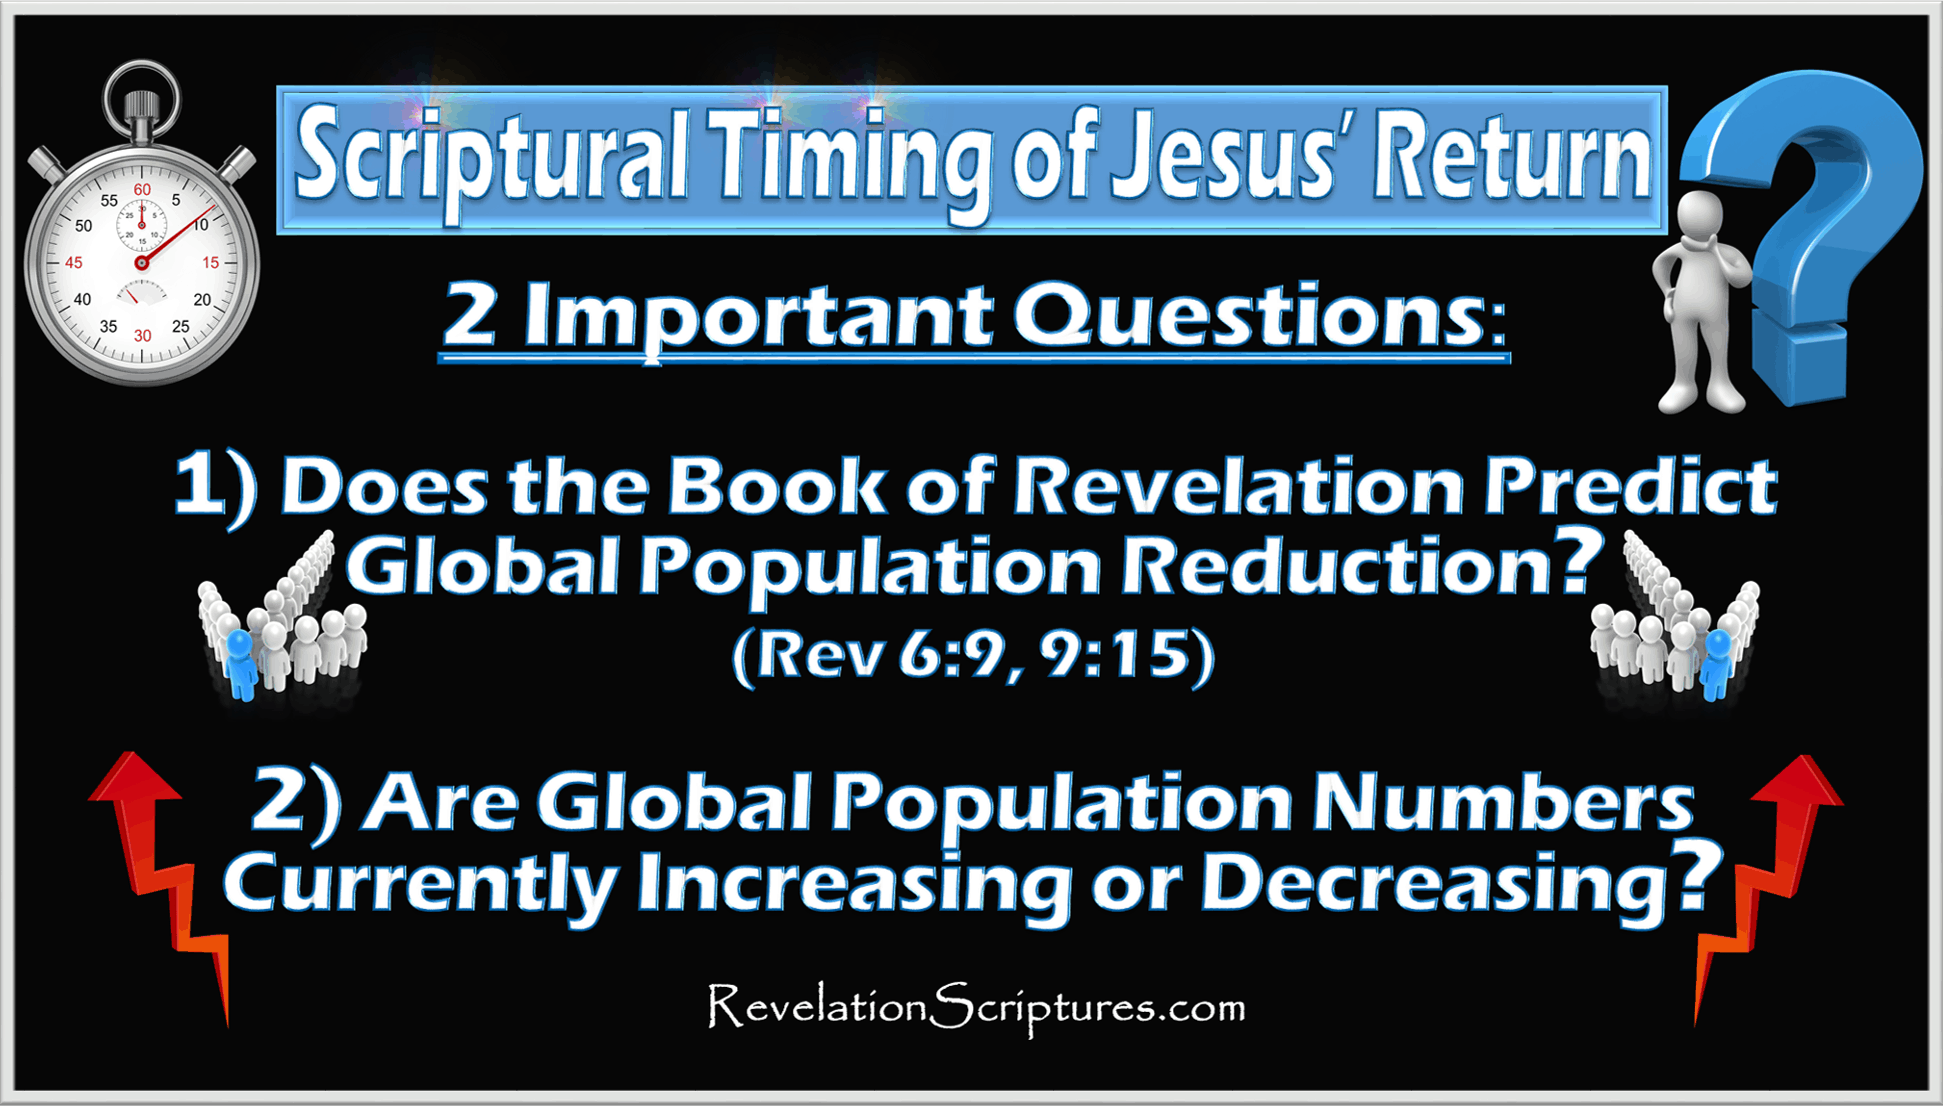 When will revelation start,when will jesus return,how long before Jesus returns,questions about Jesus return,questions about the 2nd Coming of Jesus,when will the end start,Book of Revelation,Population Control,Depopulation,Population Forcast,Population Reduction,Predictions,Charts,Population Decline,Fourth Seal,Kill fourth,Sixth Trumpet,Kill Third,7 Seals,7 Trumpets,7 Vials of Wrath,Bible,YHWH,Prophesy, End Times,Last Days,End of World,Destruction,World War 3,Apocalypse,New World Order,Order out of Chaos,Antichrist